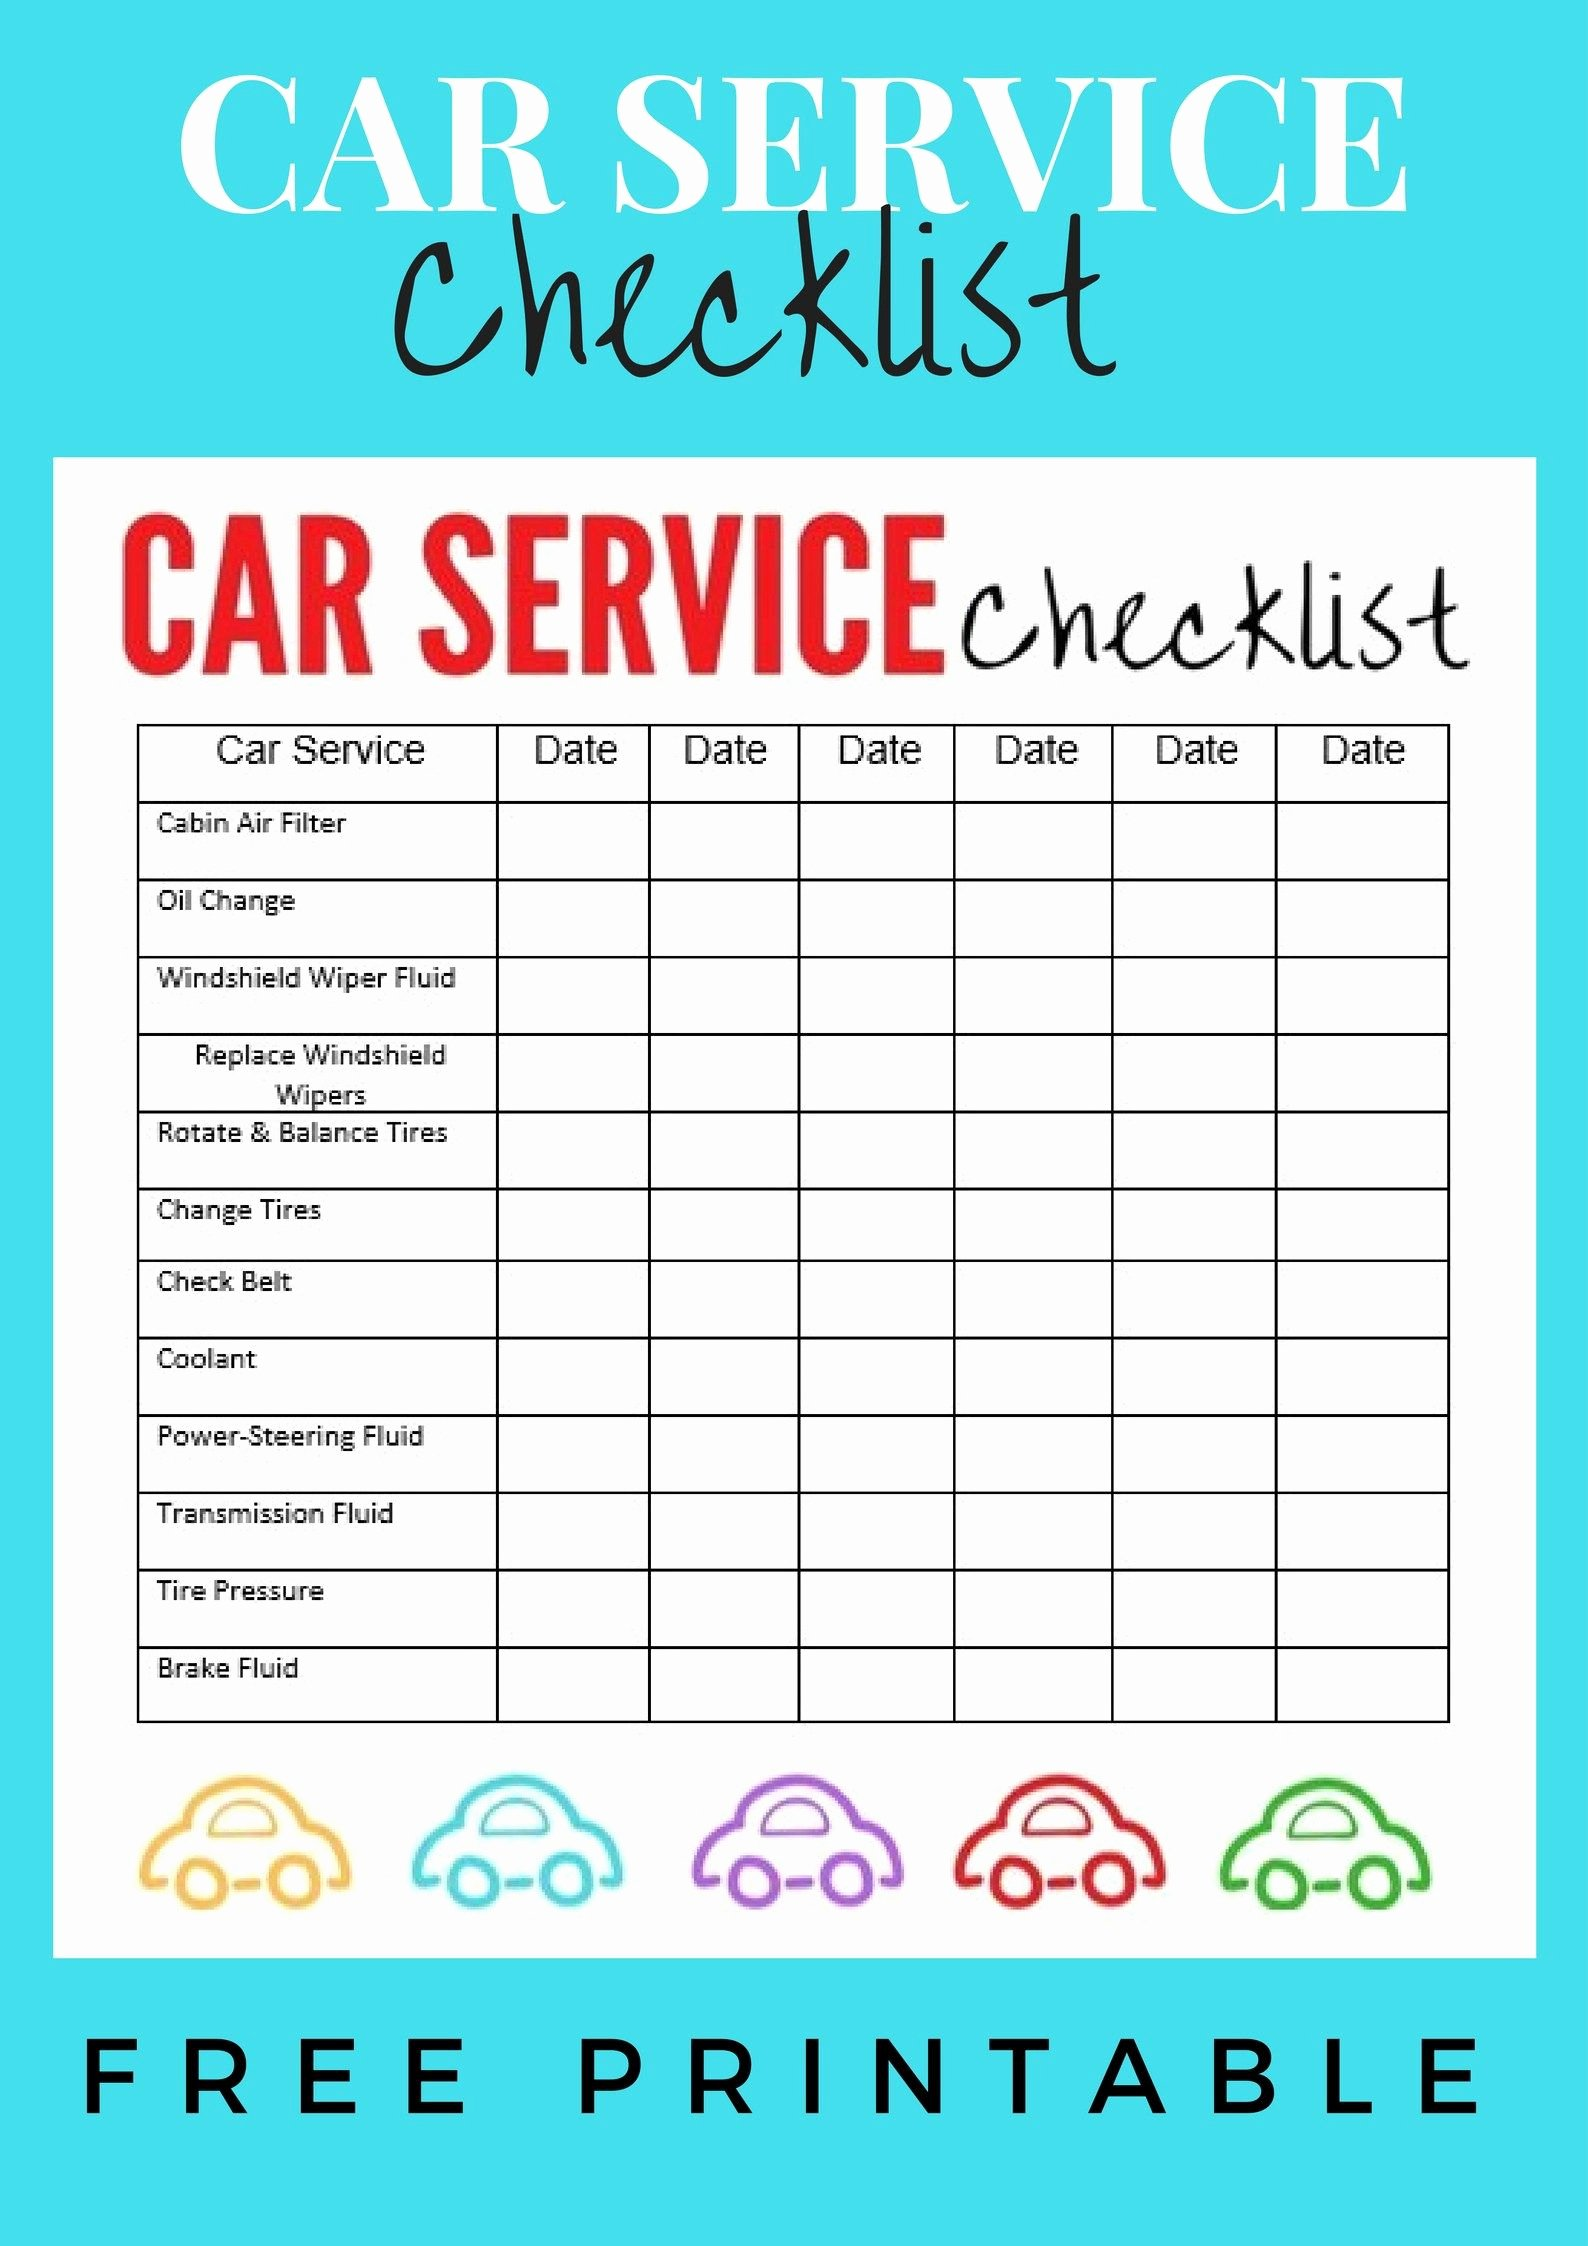 Auto Repair Checklist Template New Car Service Checklist